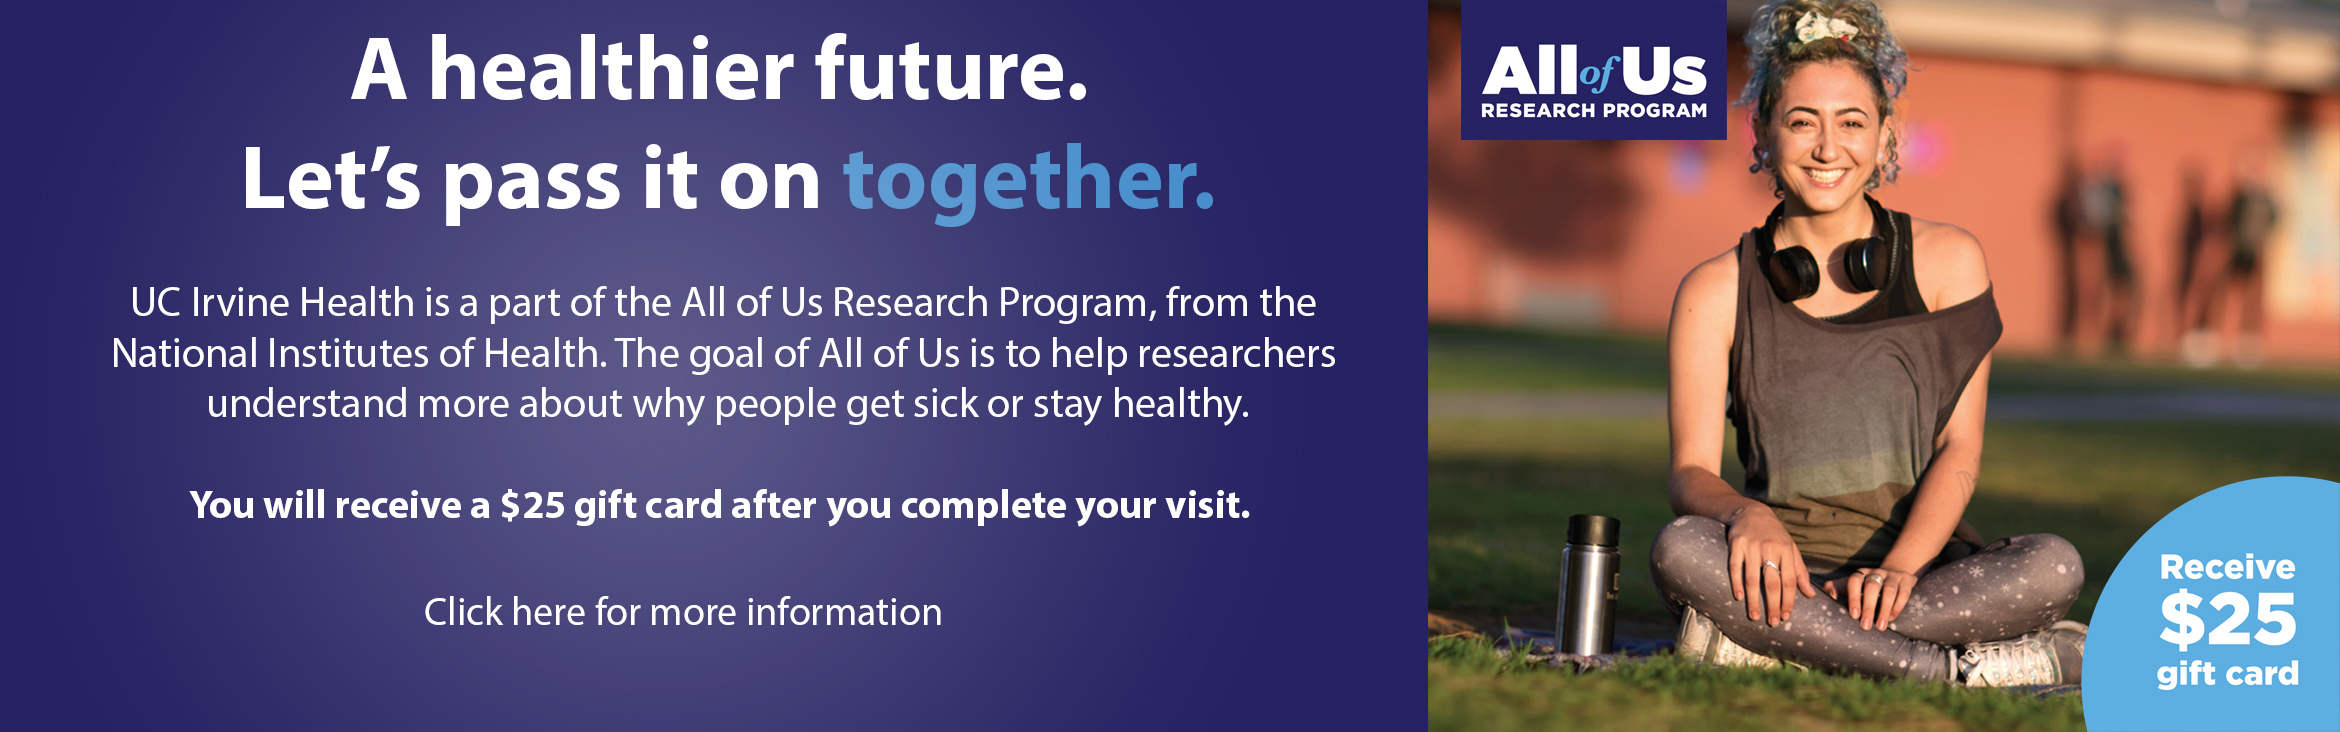 A healthier future.  Let's pass it on together.  UC Irvine health is part of the All of Us Research Program, from the National institutes of Health.  The goal of All of Us is to help researchers understand more about why people get sick or stay healthy.